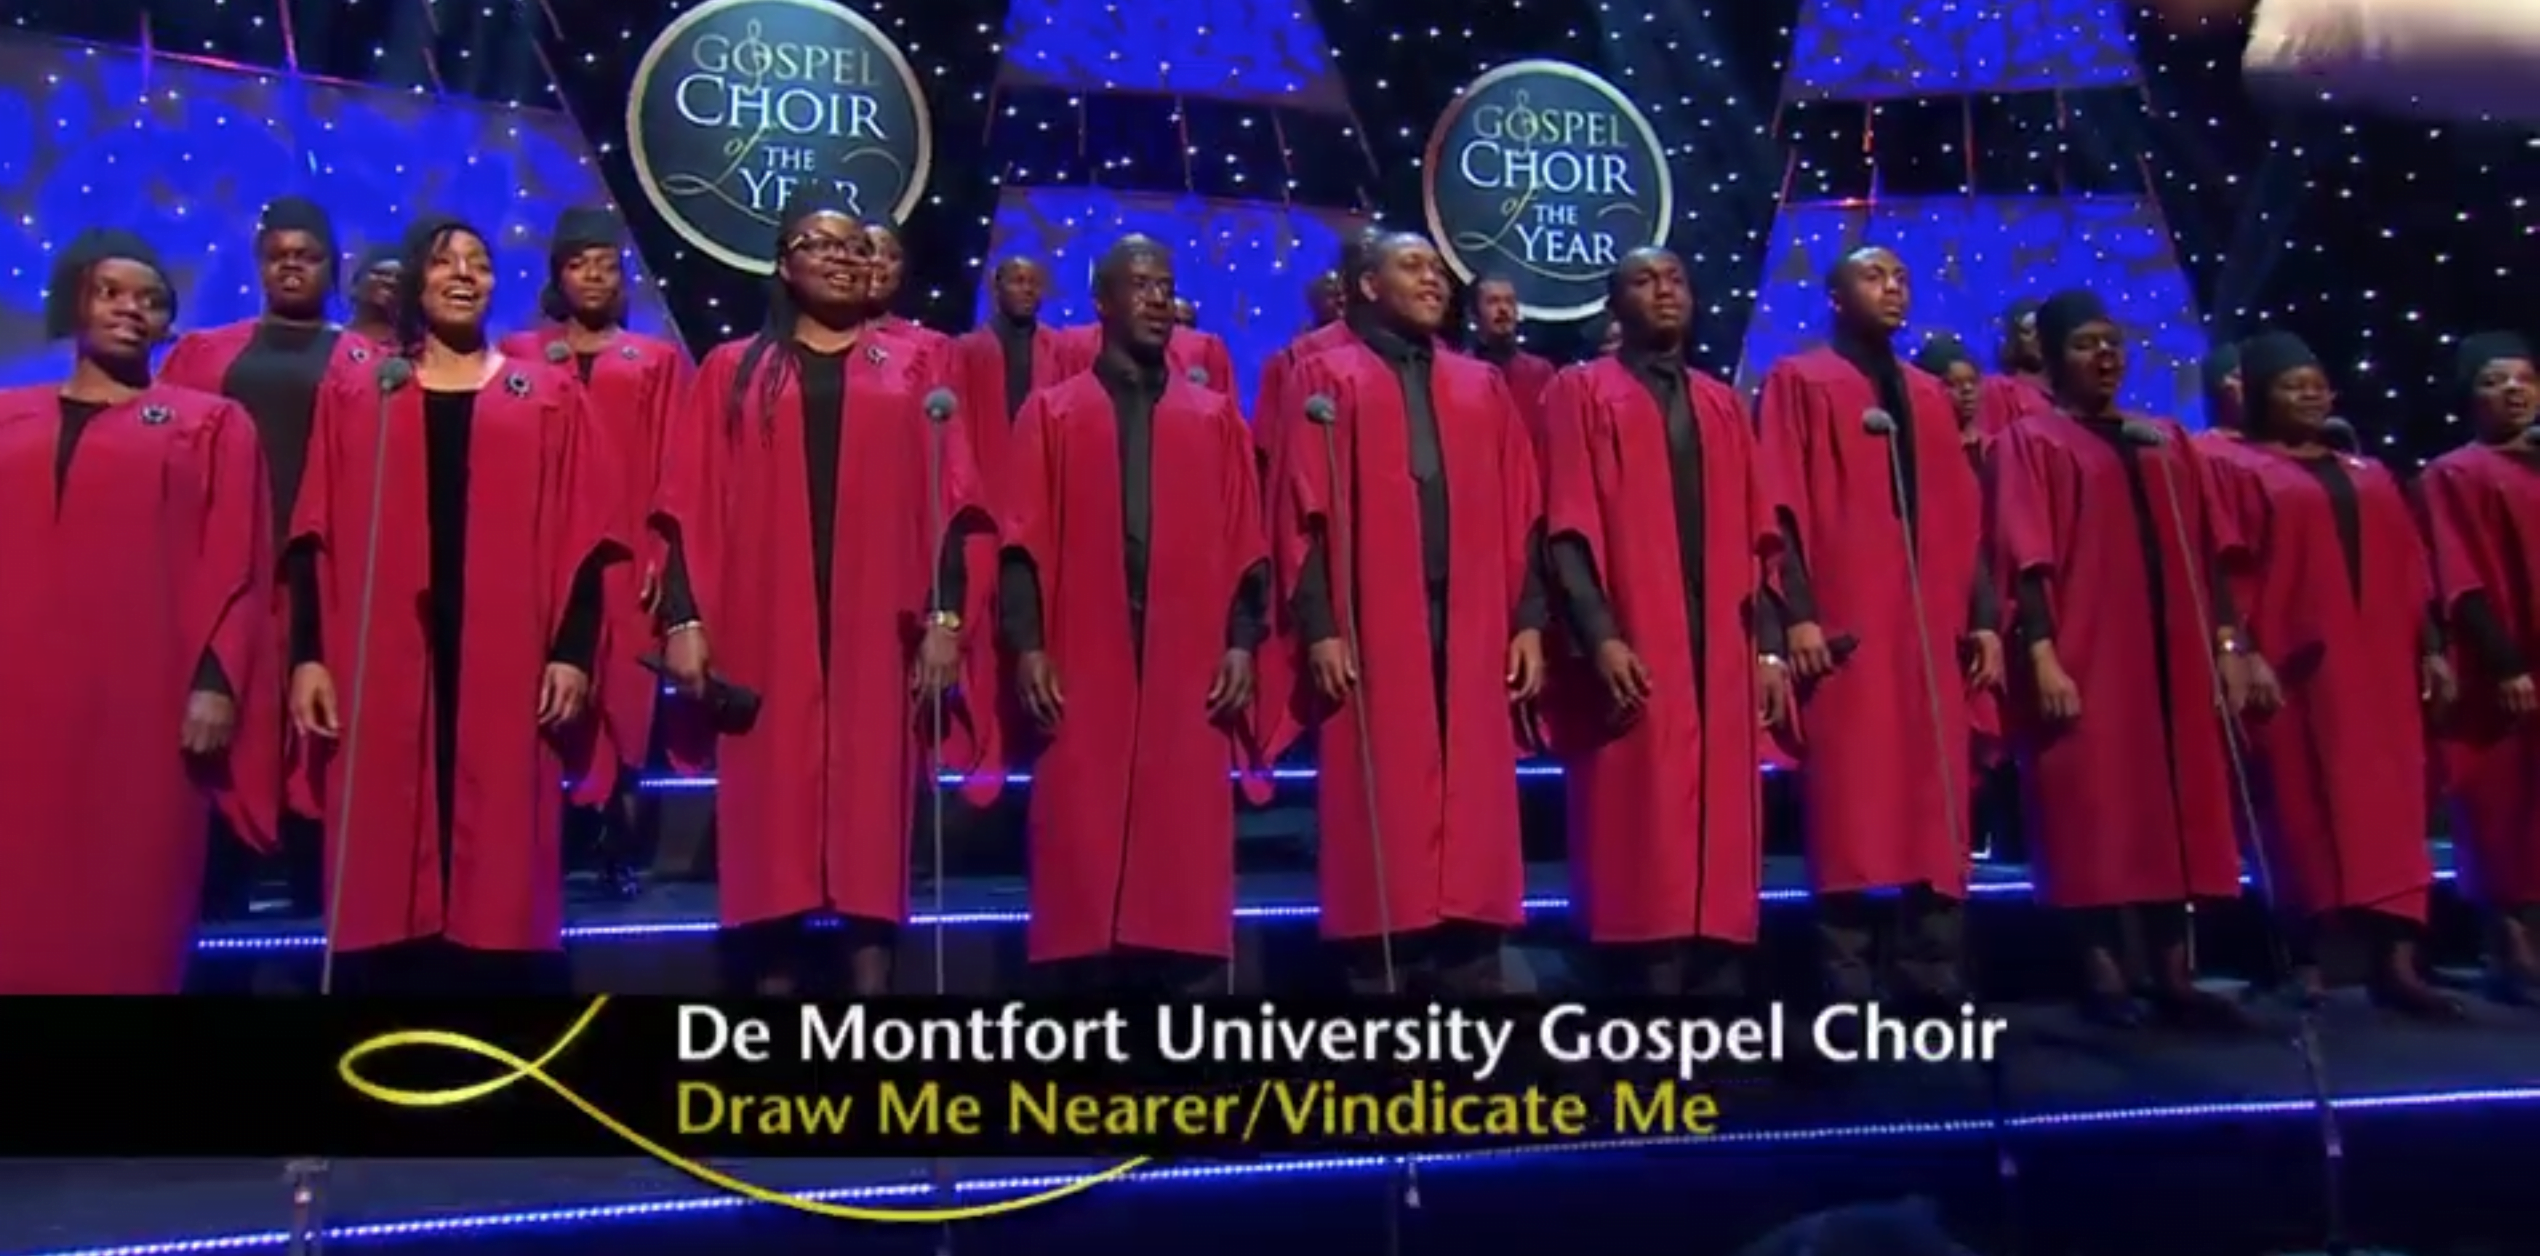 Gospel Choir Take to the Stage on Songs of Praise